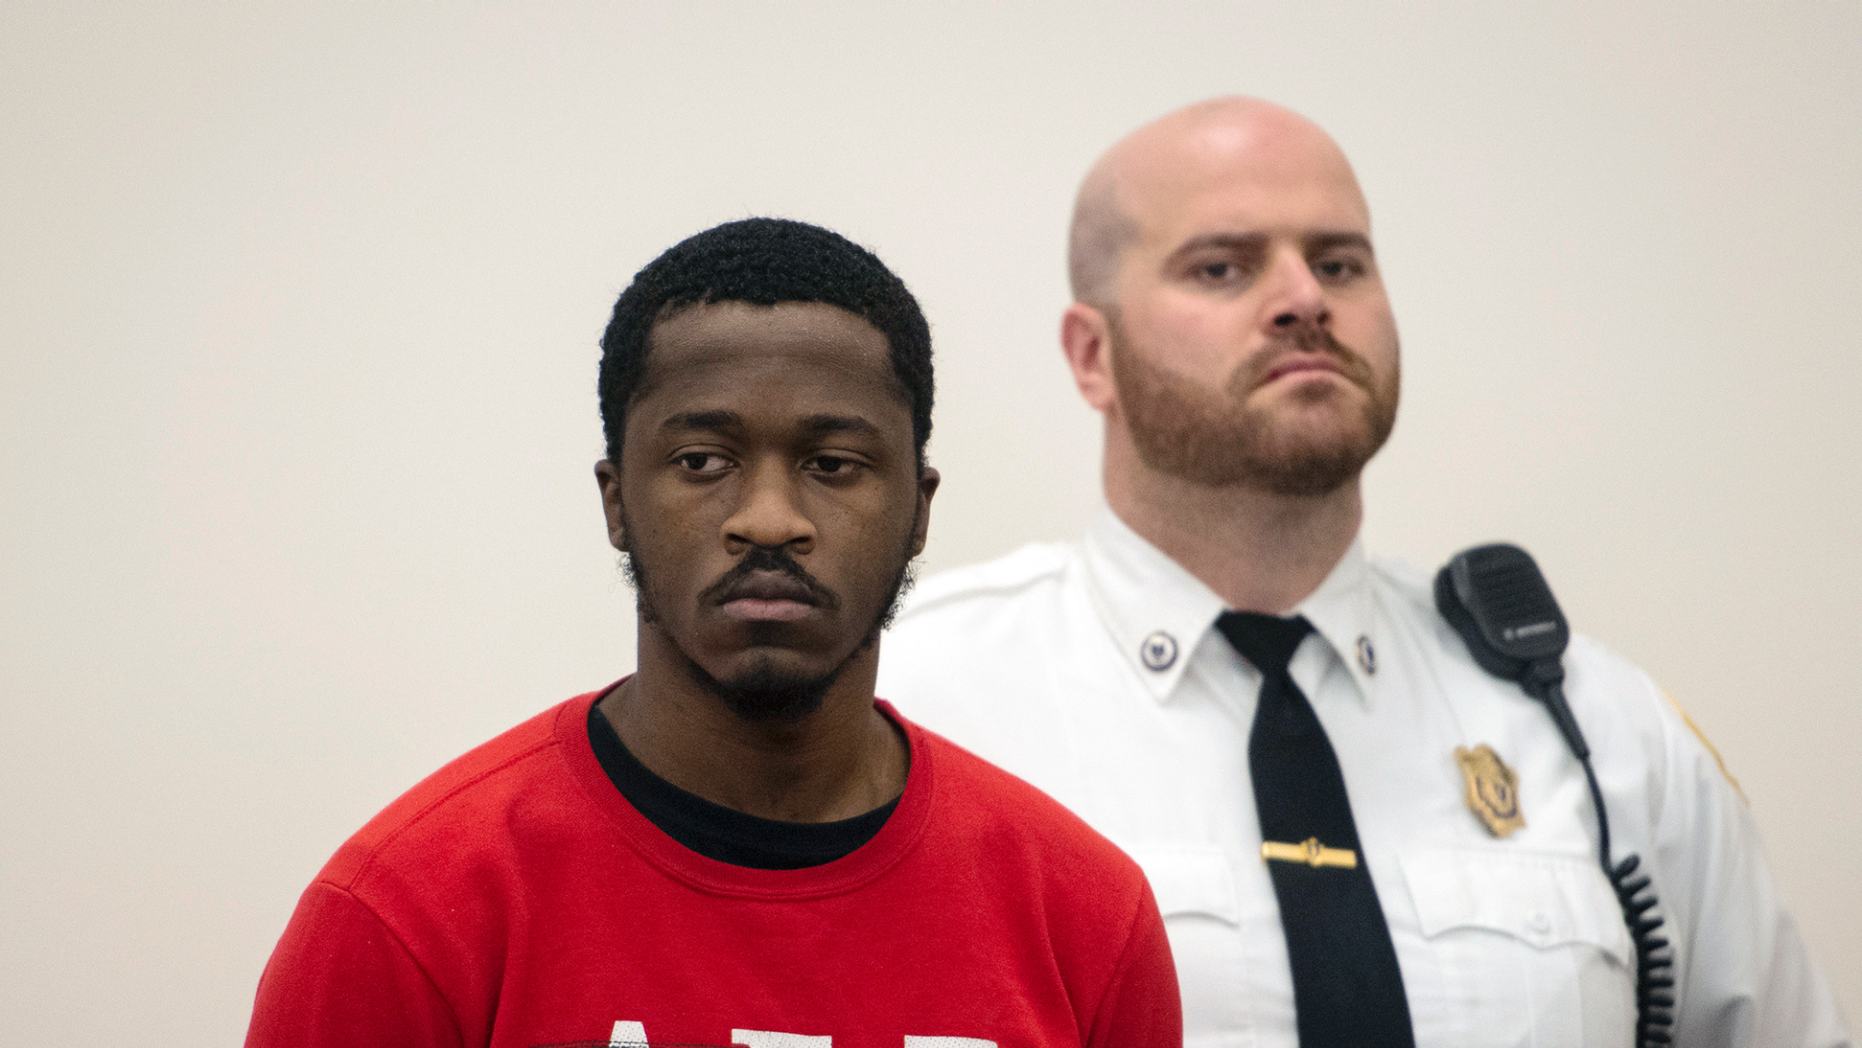 Momoh Kamara, 21, of West Boylston, appears in Worcester Superior Court, Friday, March 15, 2019 in Worcester, Mass. Worcester District Attorney Joseph Early Jr. announced Friday that a former tenant, 21-year-old Momoh Kamara, had been indicted on second-degree murder, arson and burglary charges. (Ashley Green/Worcester Telegram & Gazette via AP)